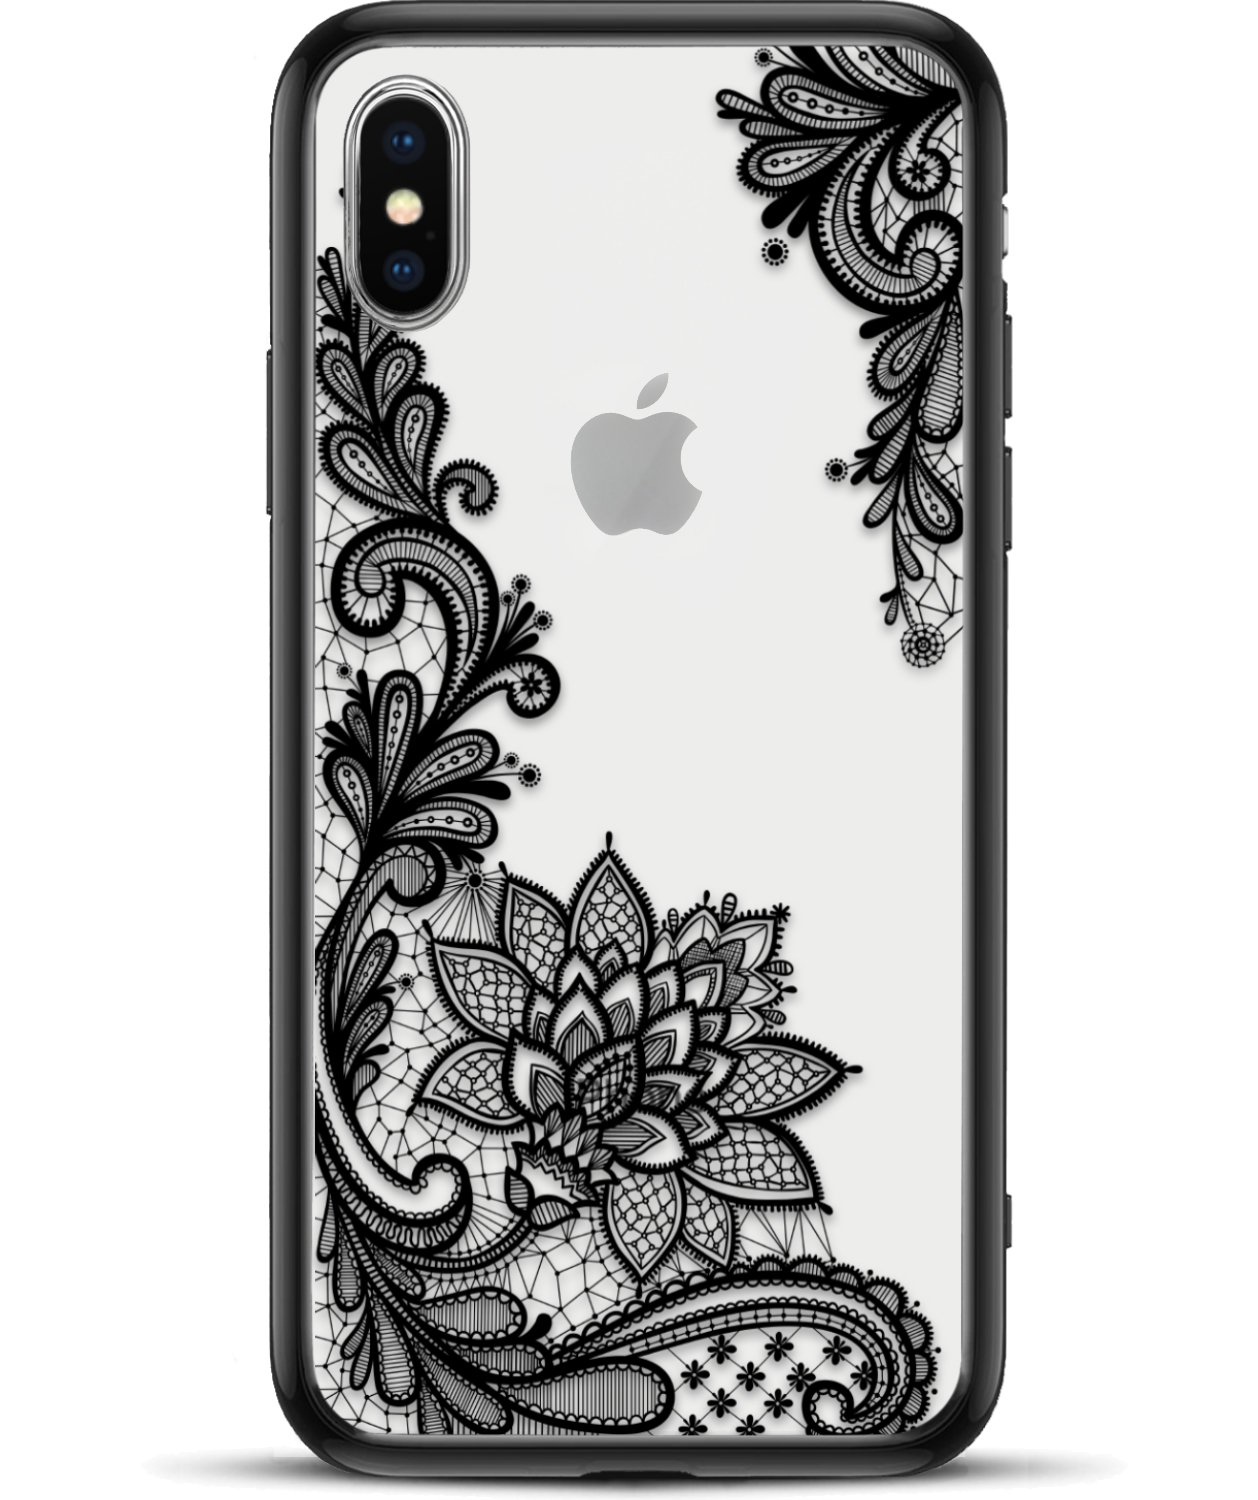 Apple Iphone Xs Max Slim Fit Phone Case For Girls Women With Cute Black Flowers Design Ultra Thin Matte Hard Plastic Case Cover And Protective